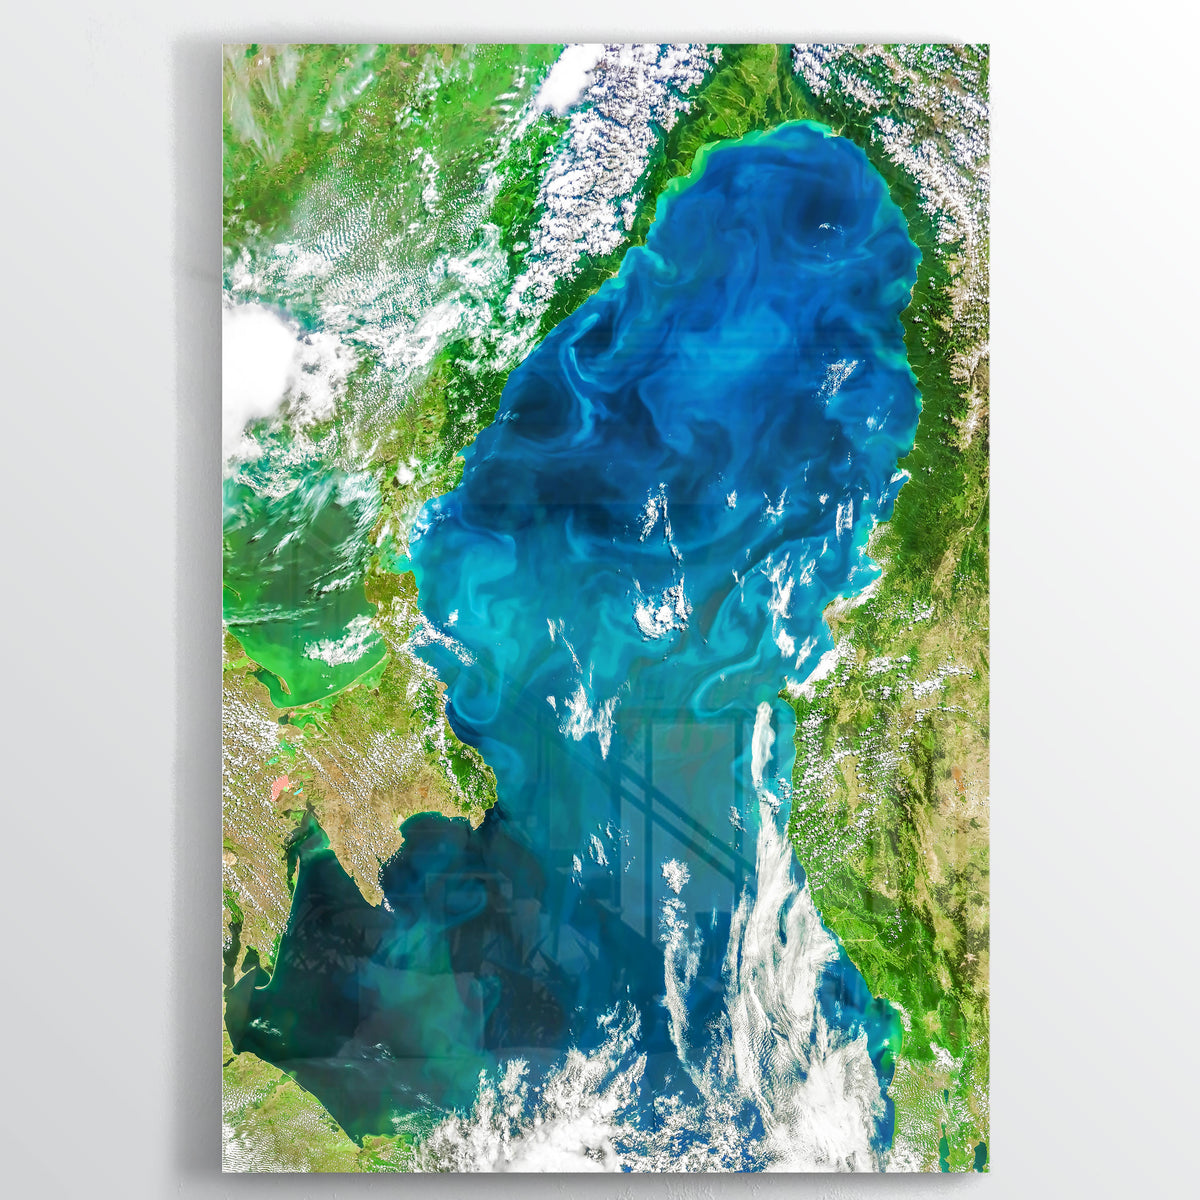 Black Sea Earth Photography - Floating Acrylic Art - Point Two Design